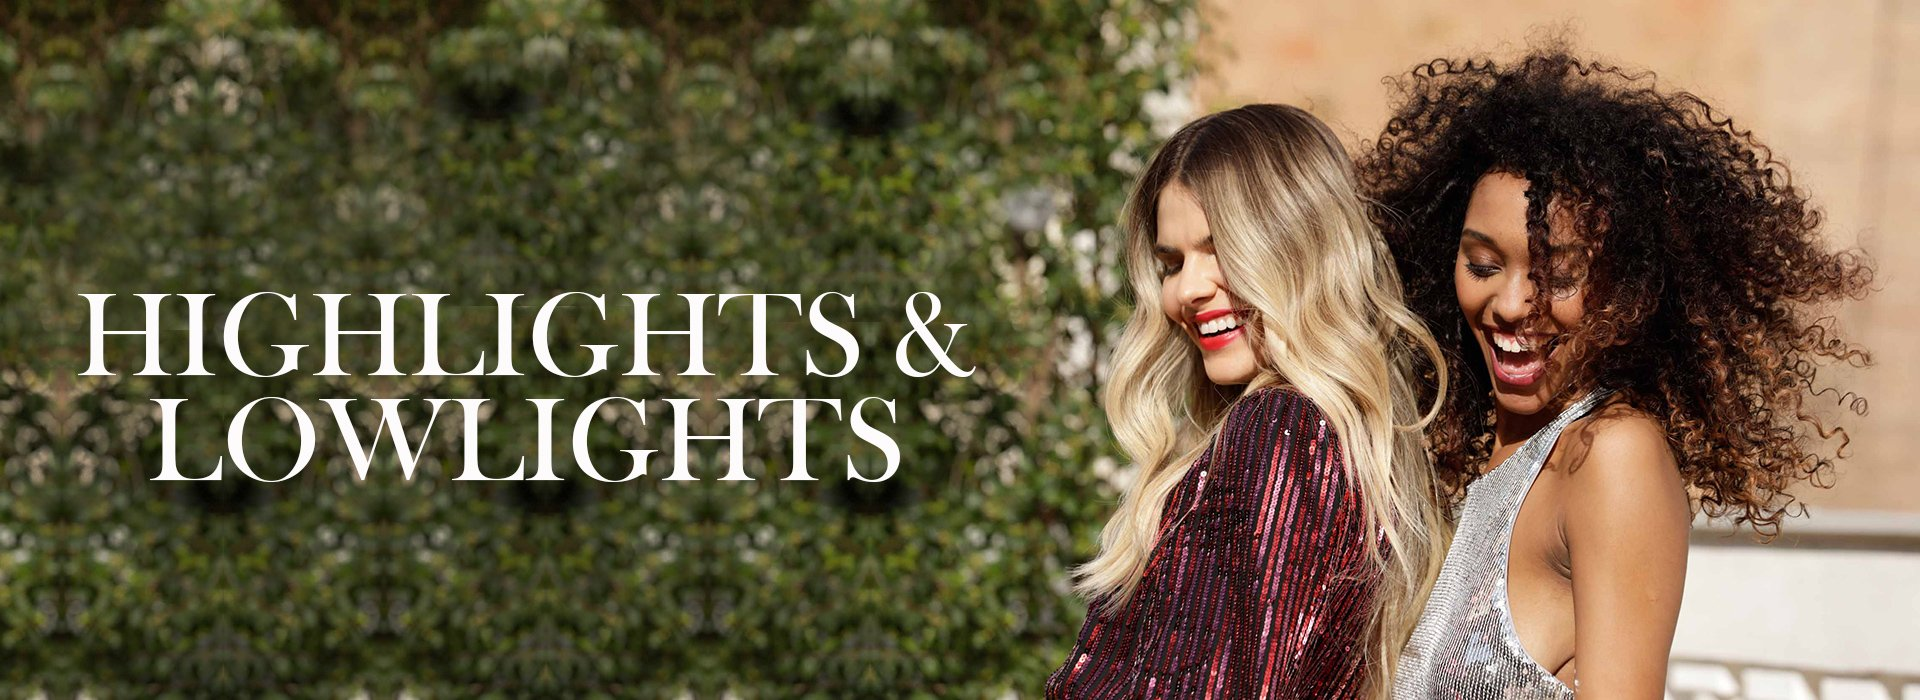 Highlights Lowlights Lore Hairdressing Salon in North Baddlesley